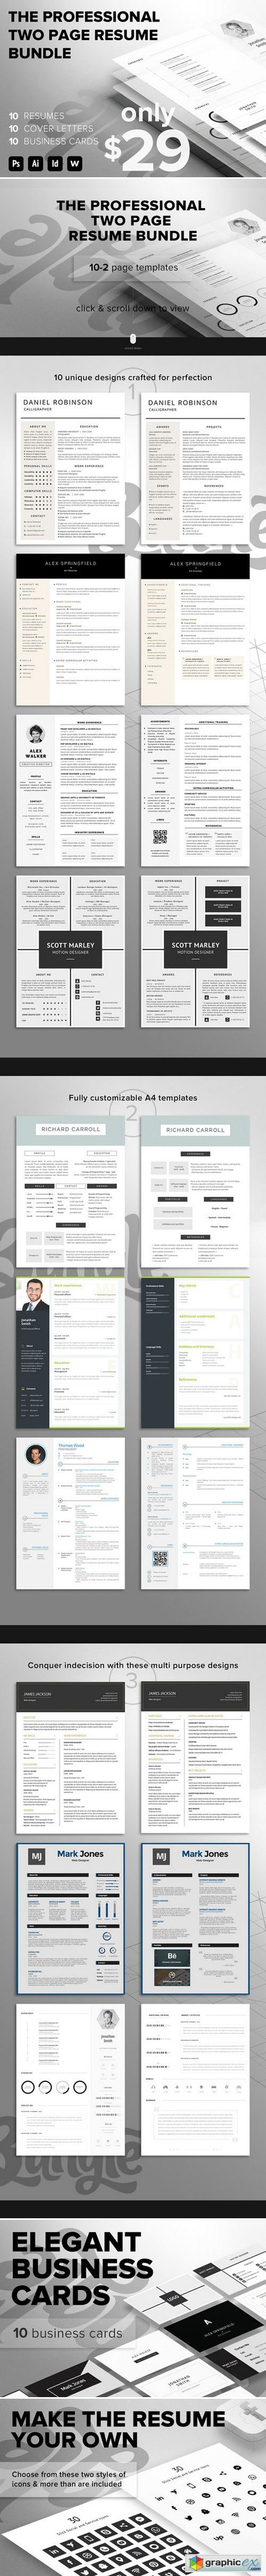 Professional 2 Page Resume Bundle